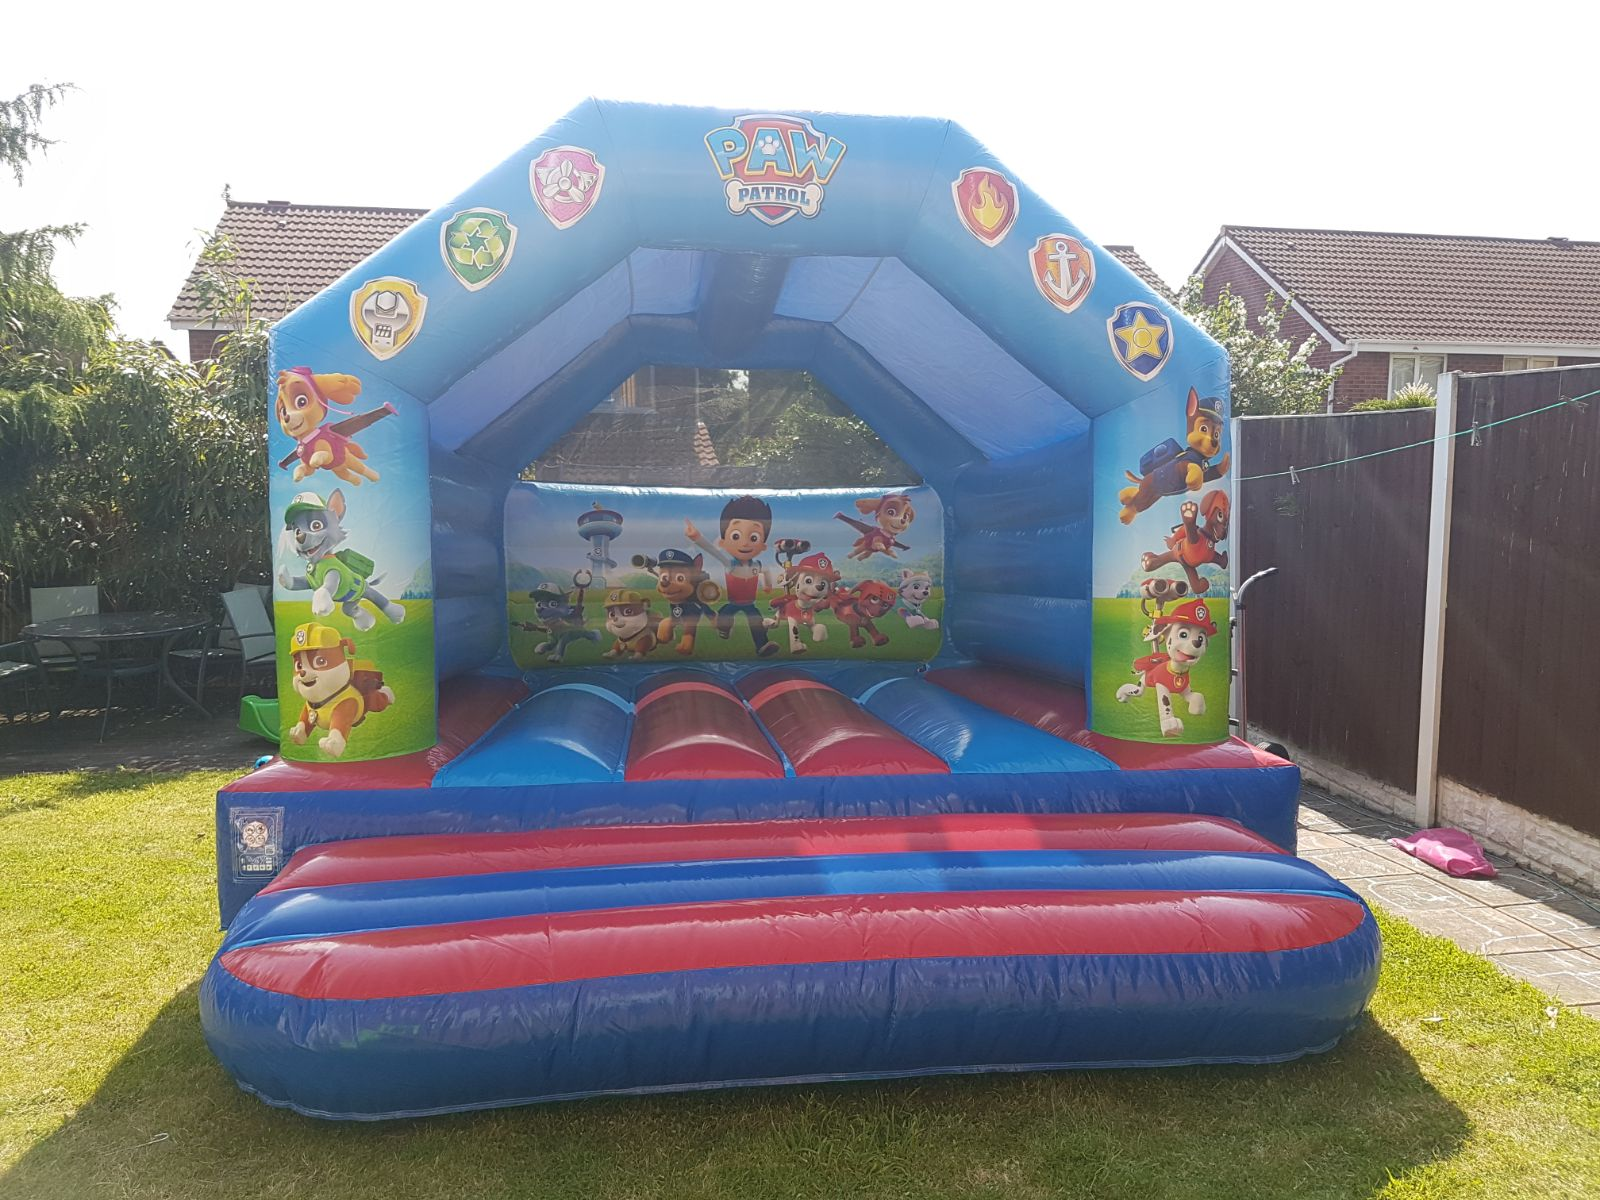 Paw Patrol Bounc Castle In Rainford St Helens